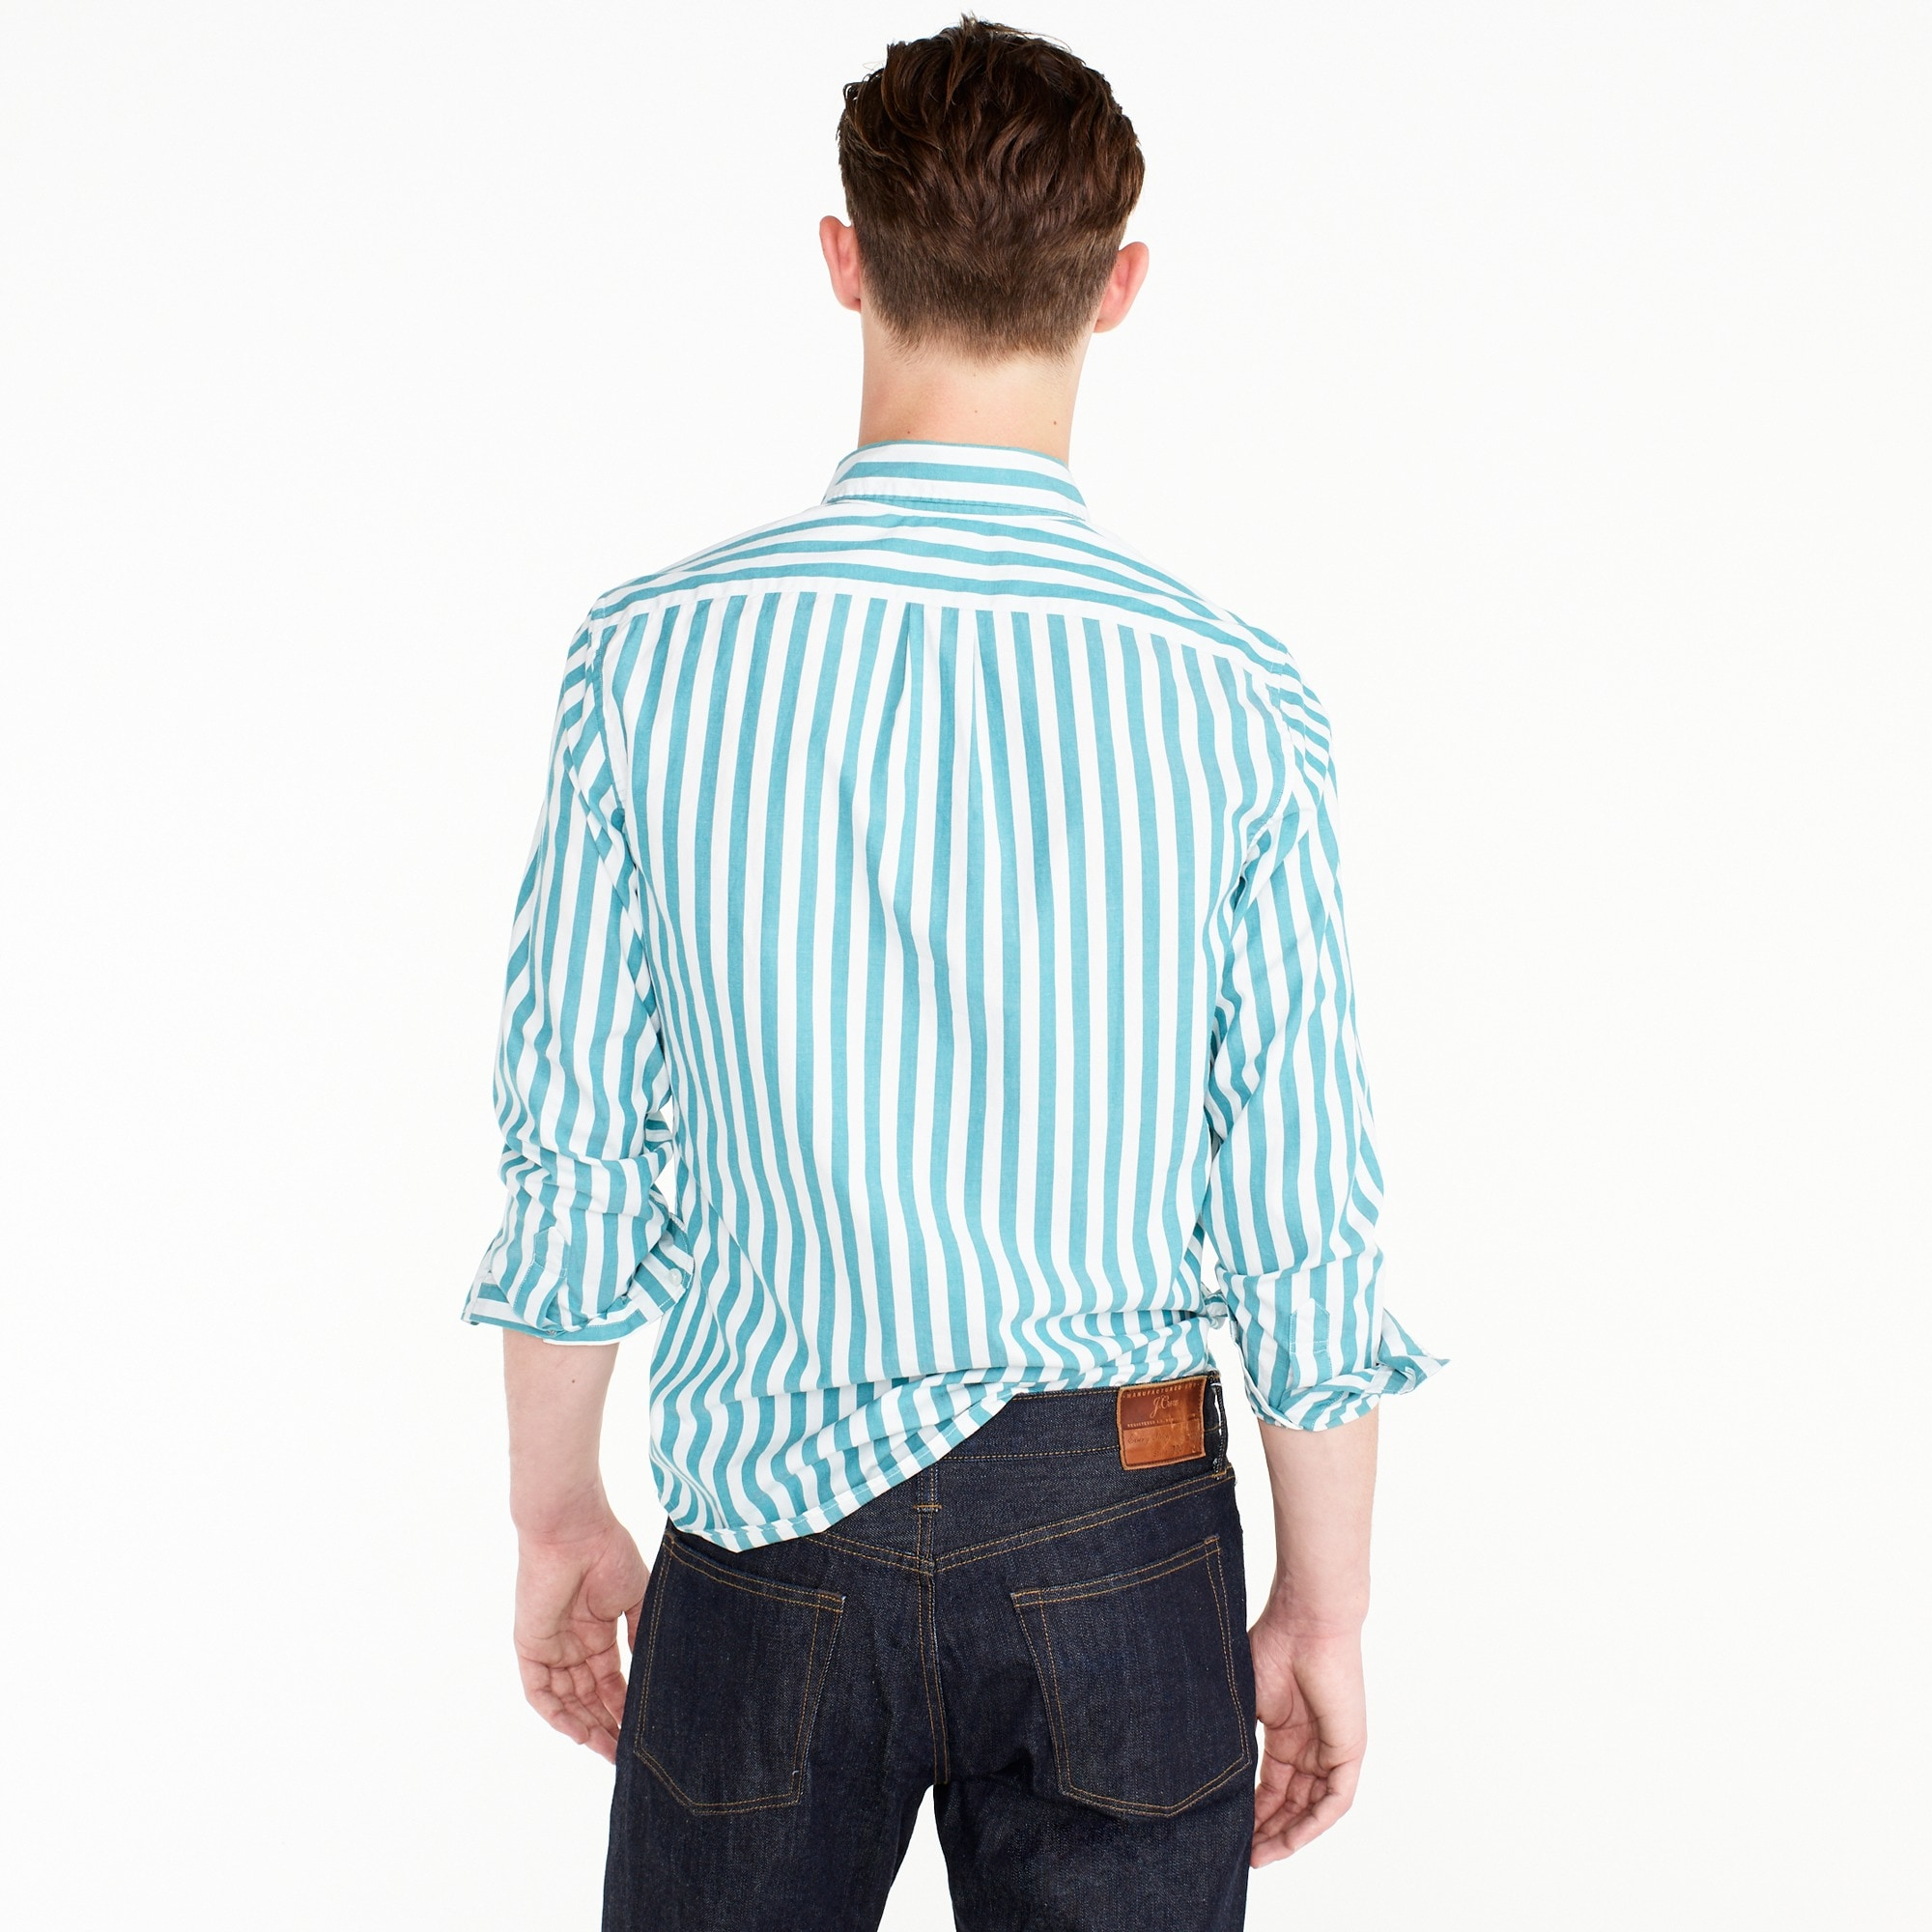 Slim stretch Secret Wash shirt in turquoise stripe